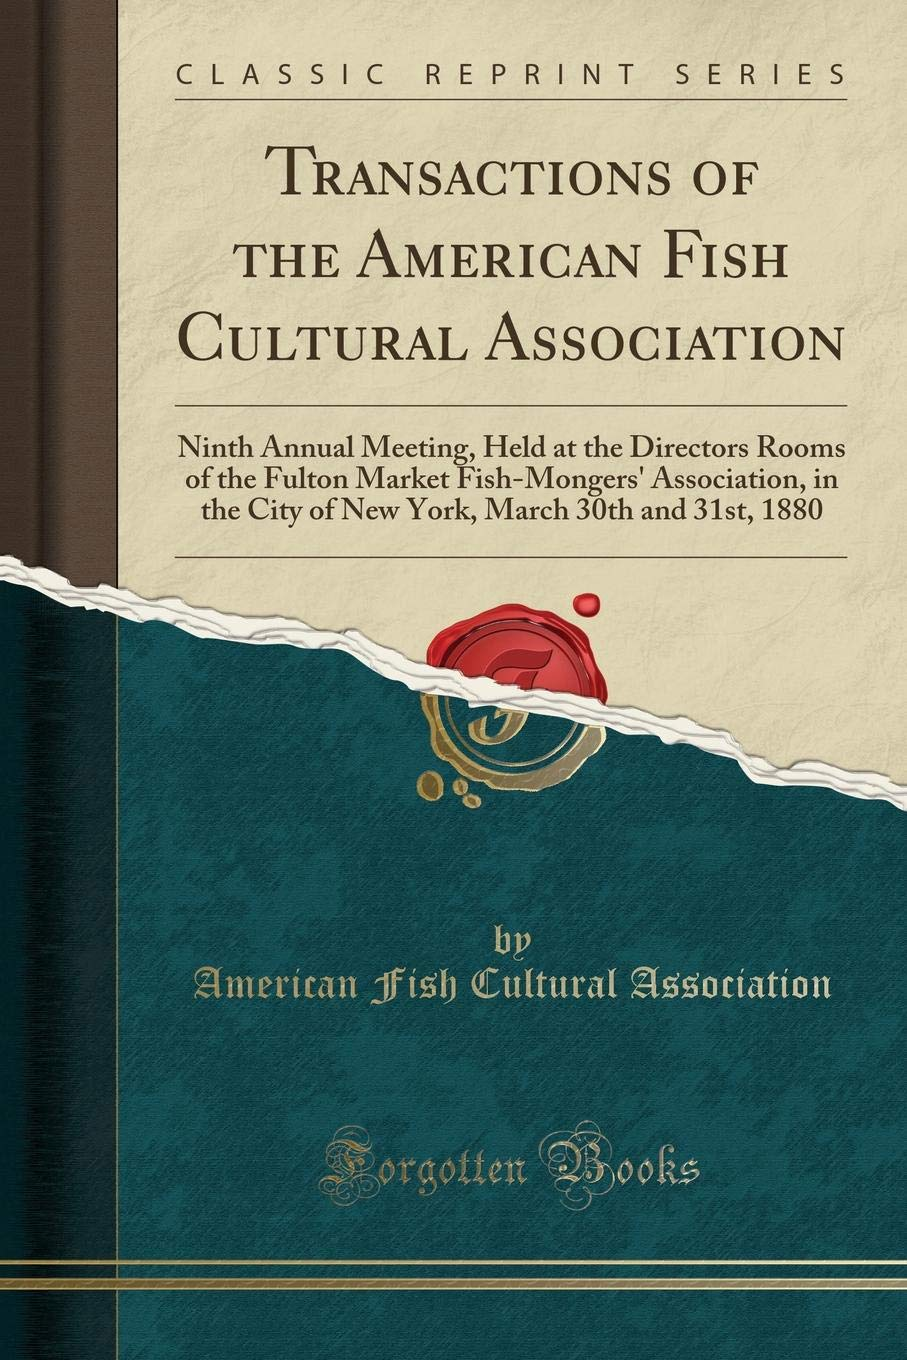 Download Transactions of the American Fish Cultural Association: Ninth Annual Meeting, Held at the Directors Rooms of the Fulton Market Fish-Mongers' ... March 30th and 31st, 1880 (Classic Reprint) ebook